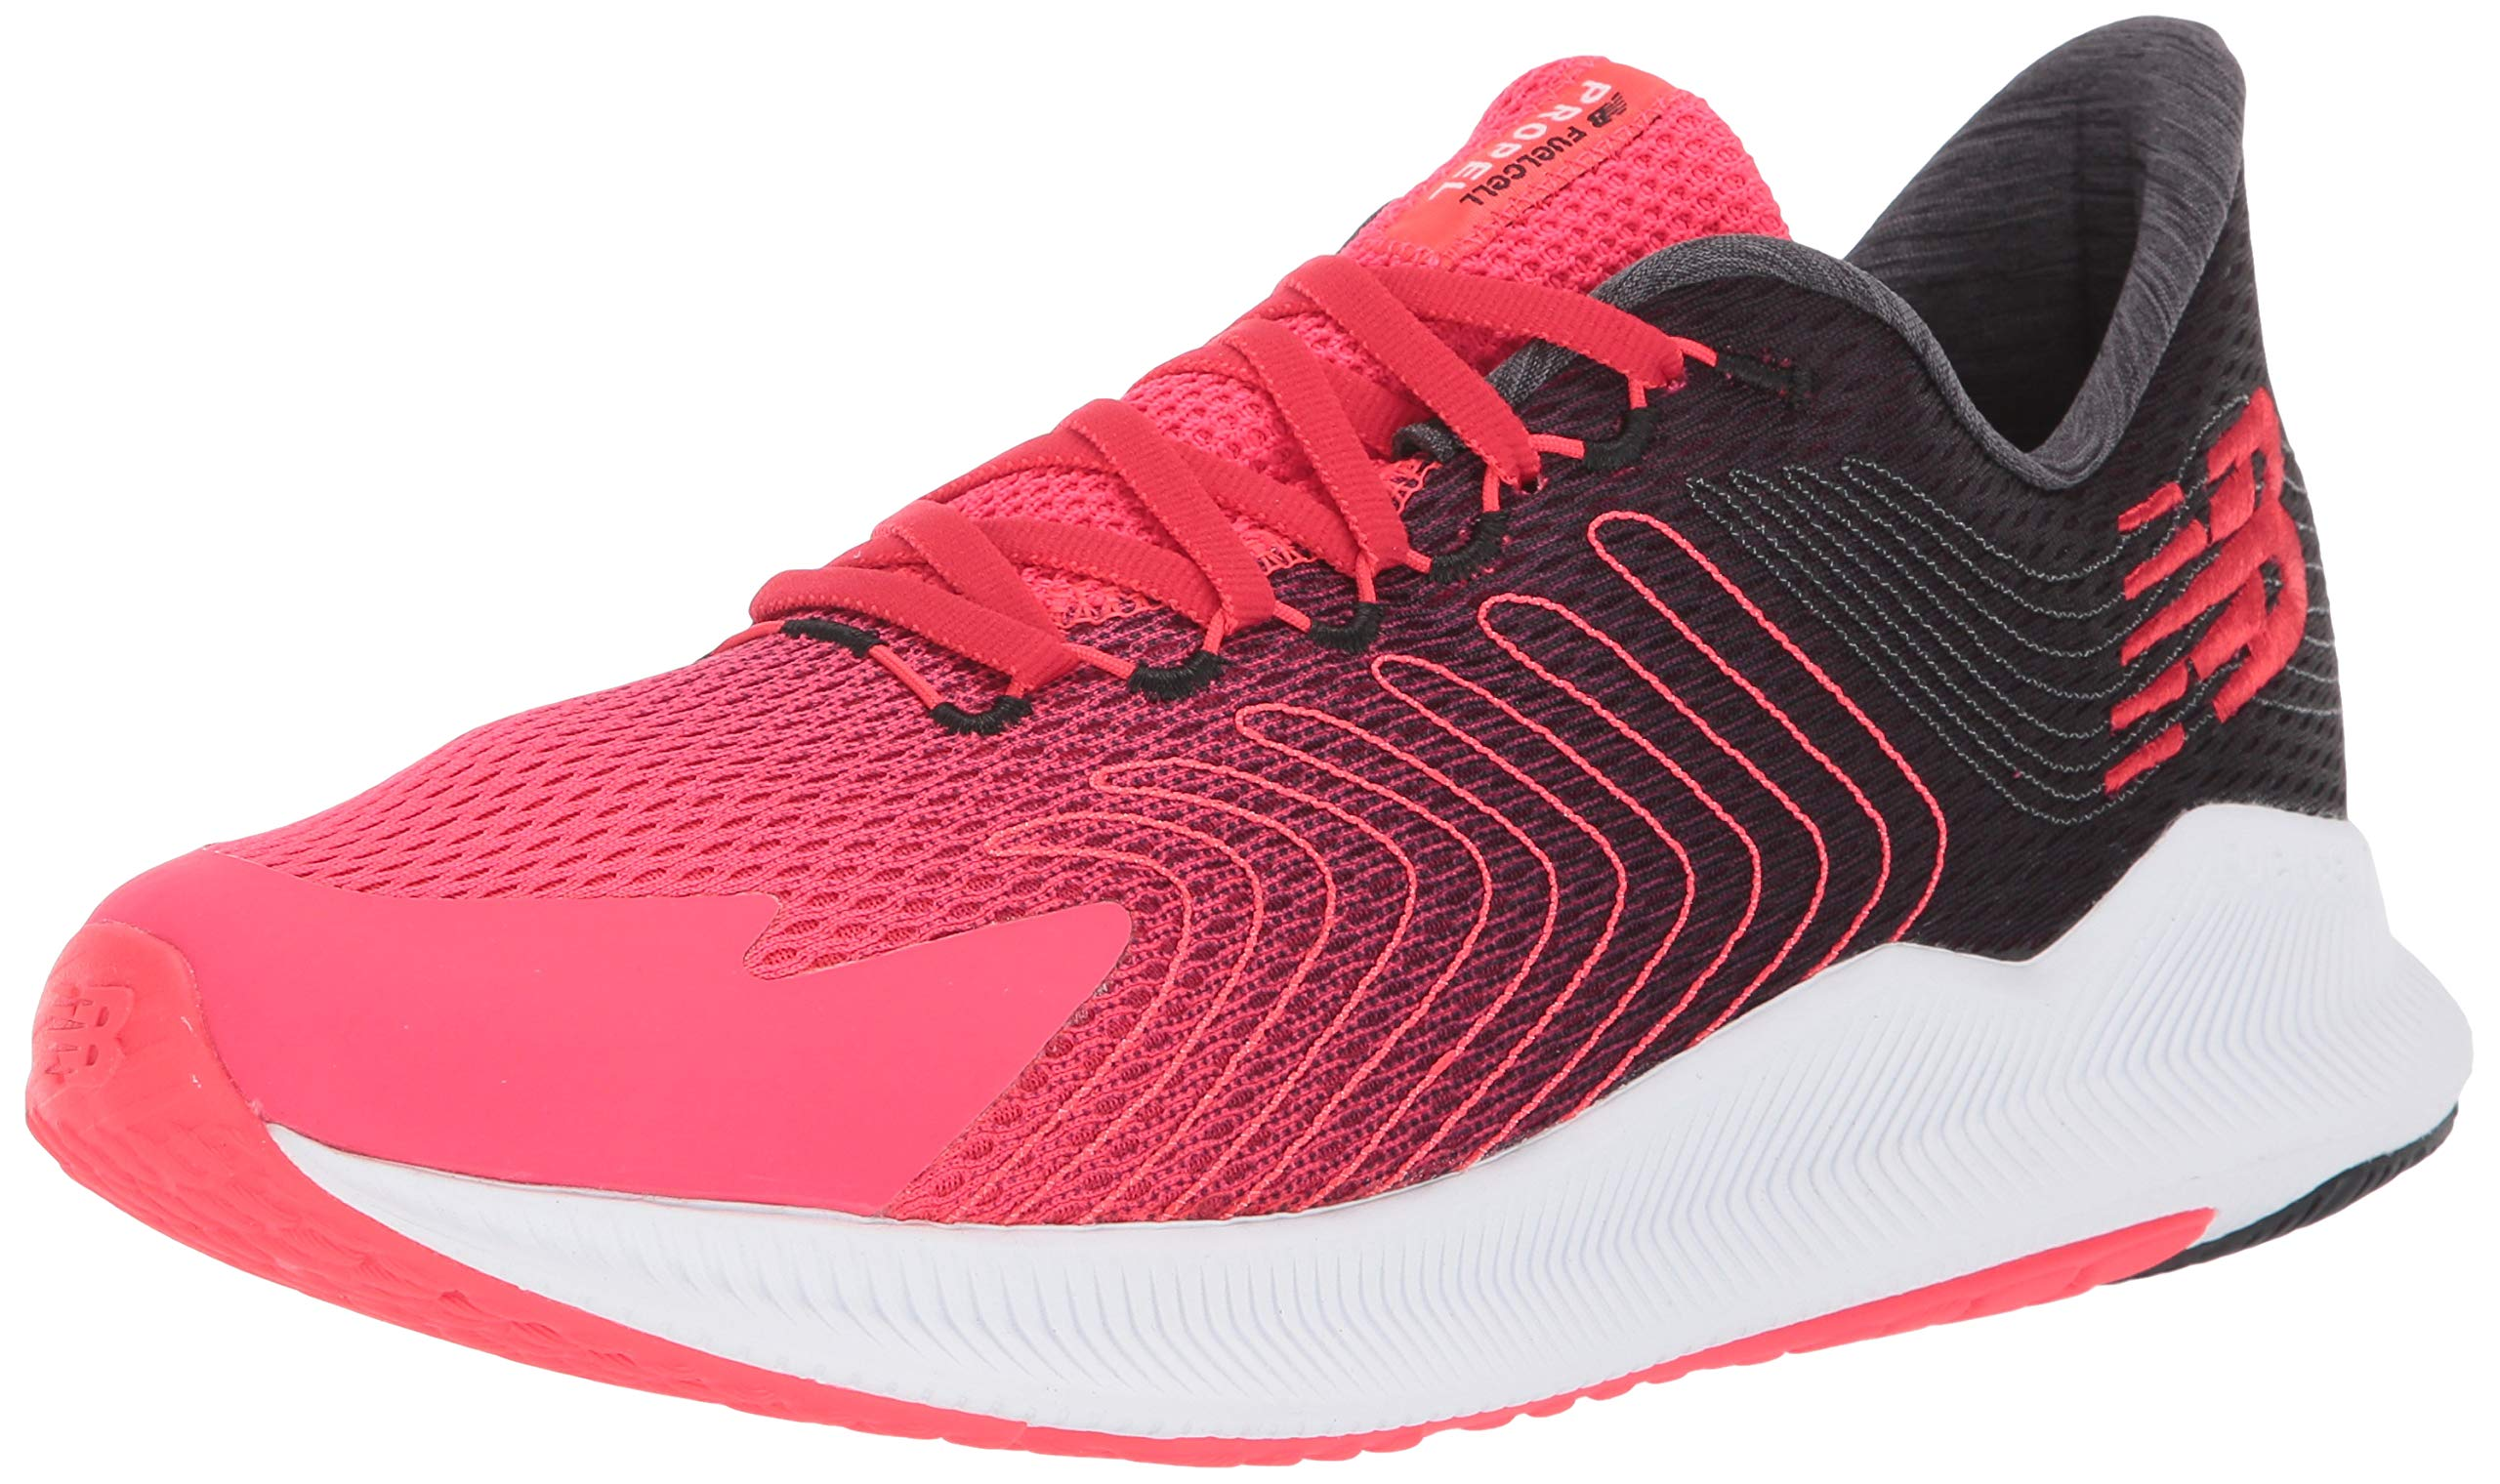 New Balance Men's Propel V1 FuelCell Running Shoe, Energy RED/Peony, 8 D US by New Balance